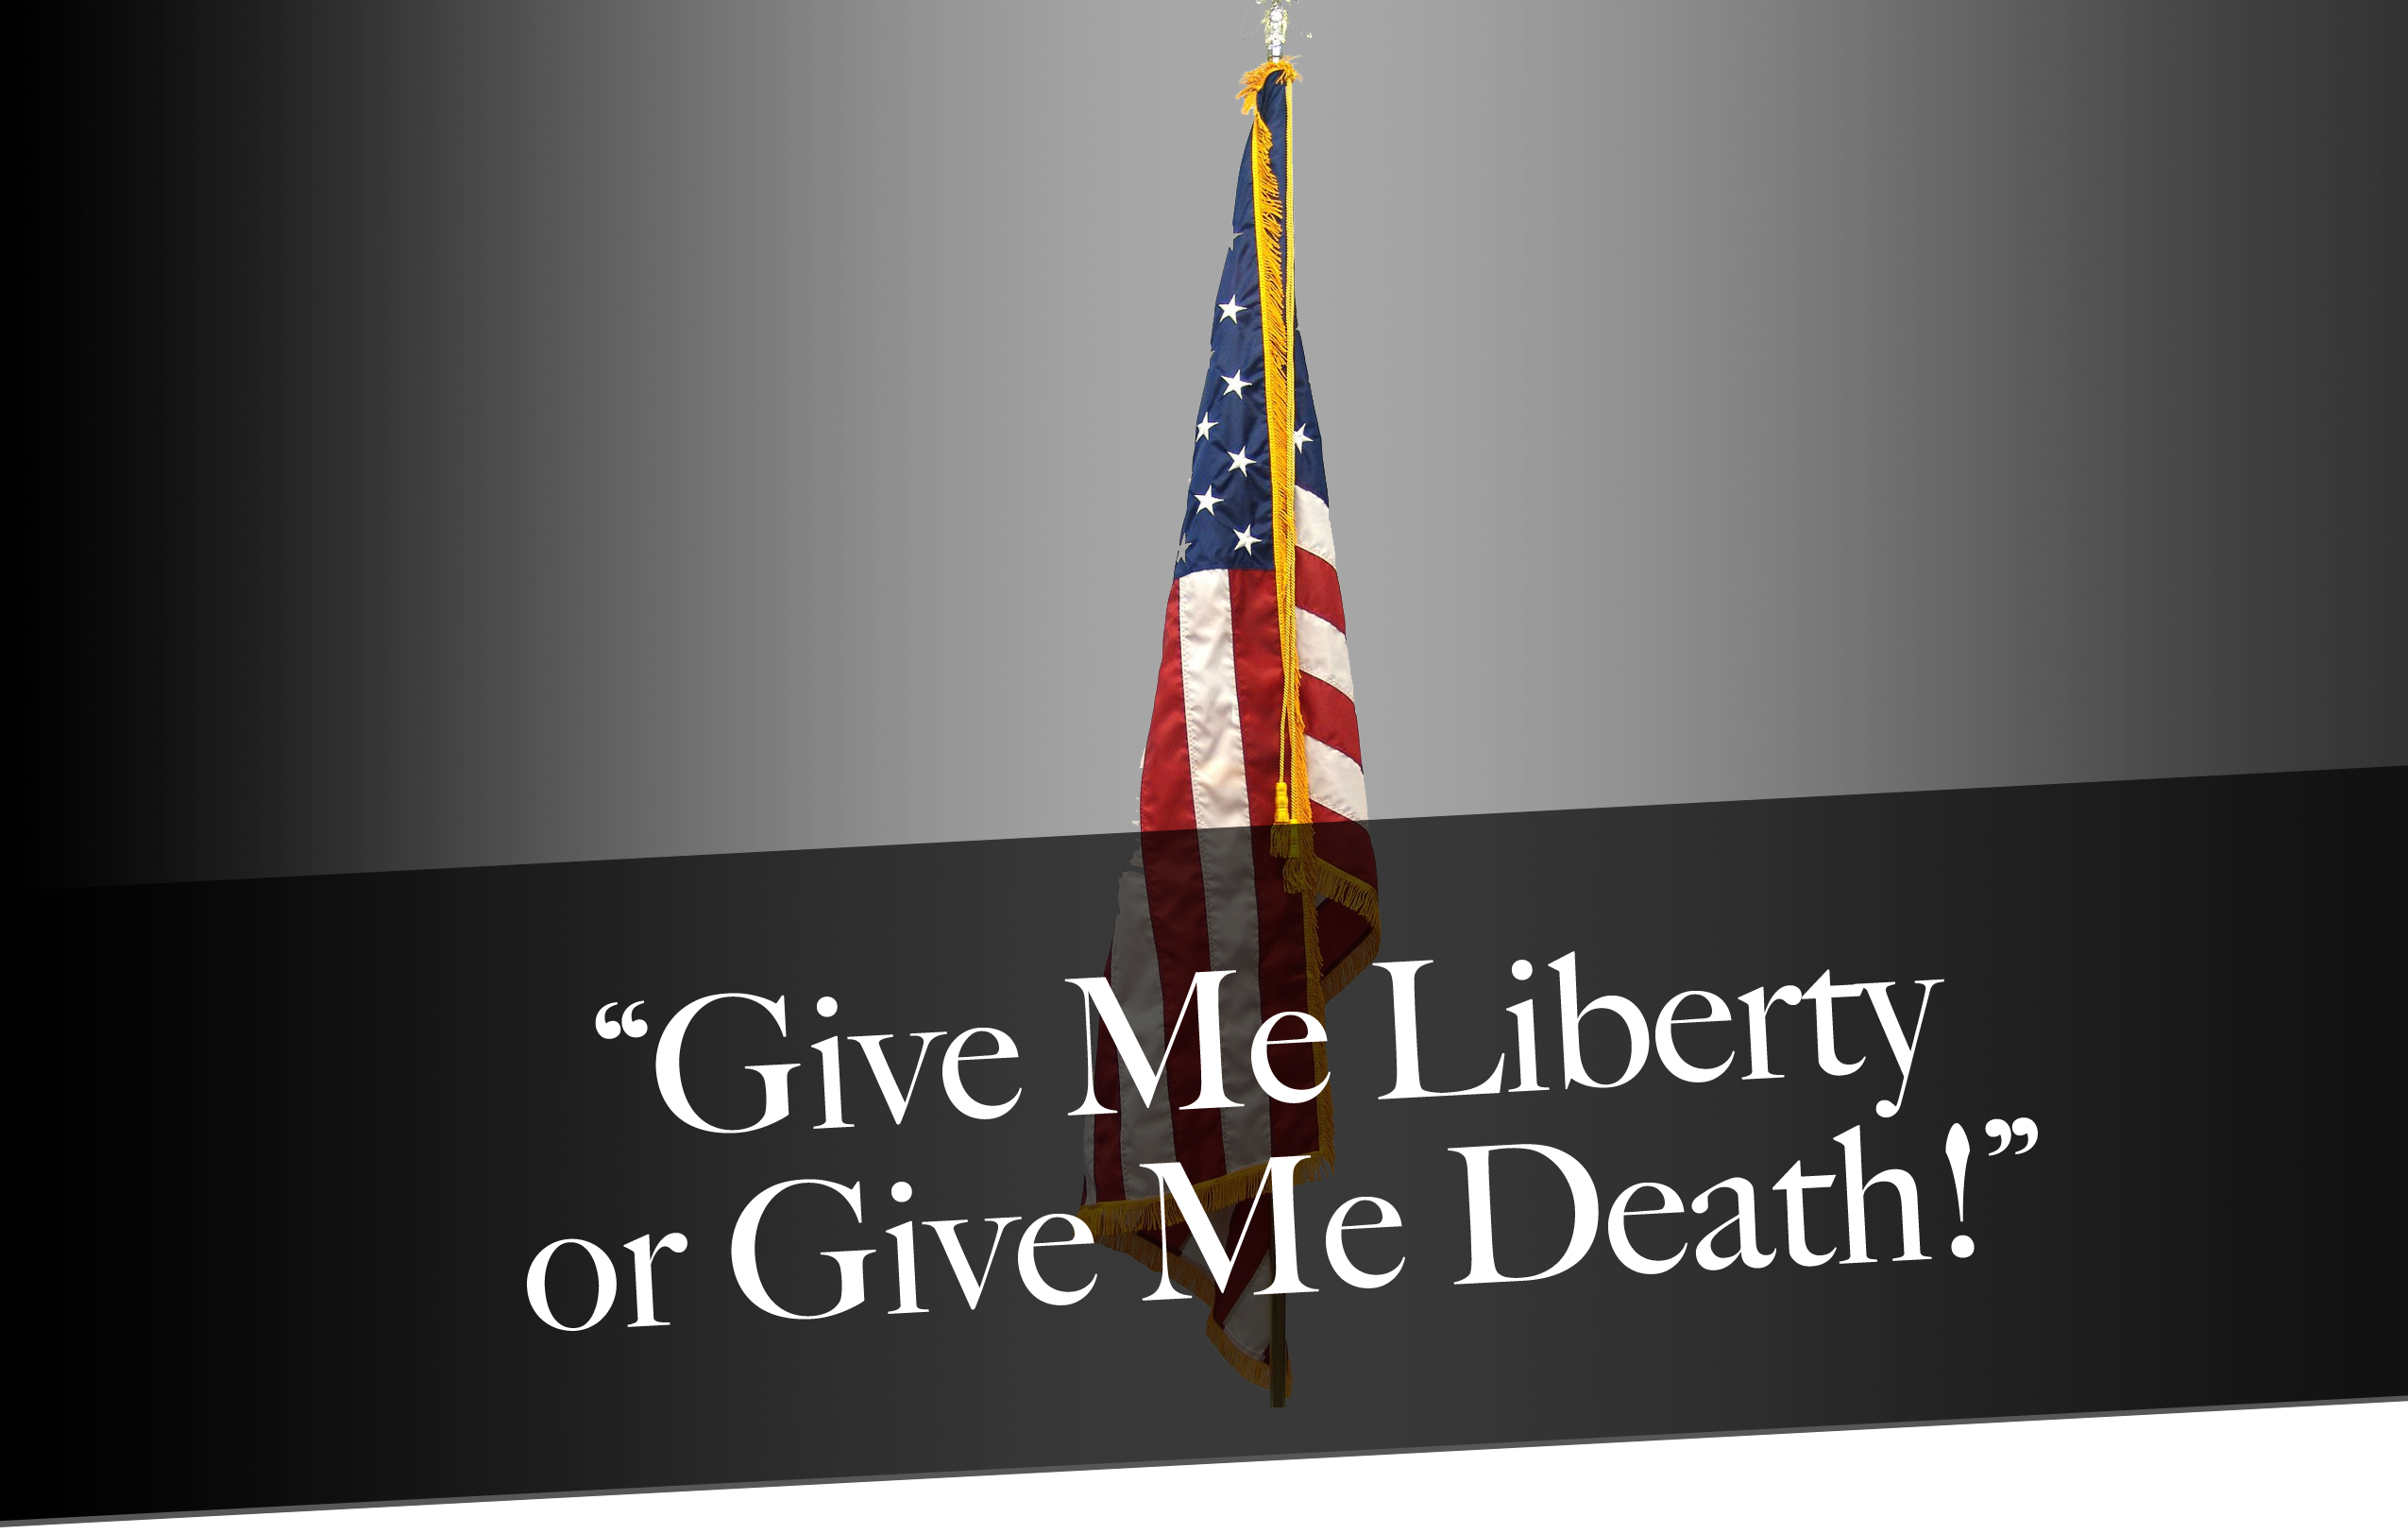 patrick henry give me liberty or give me death meaning